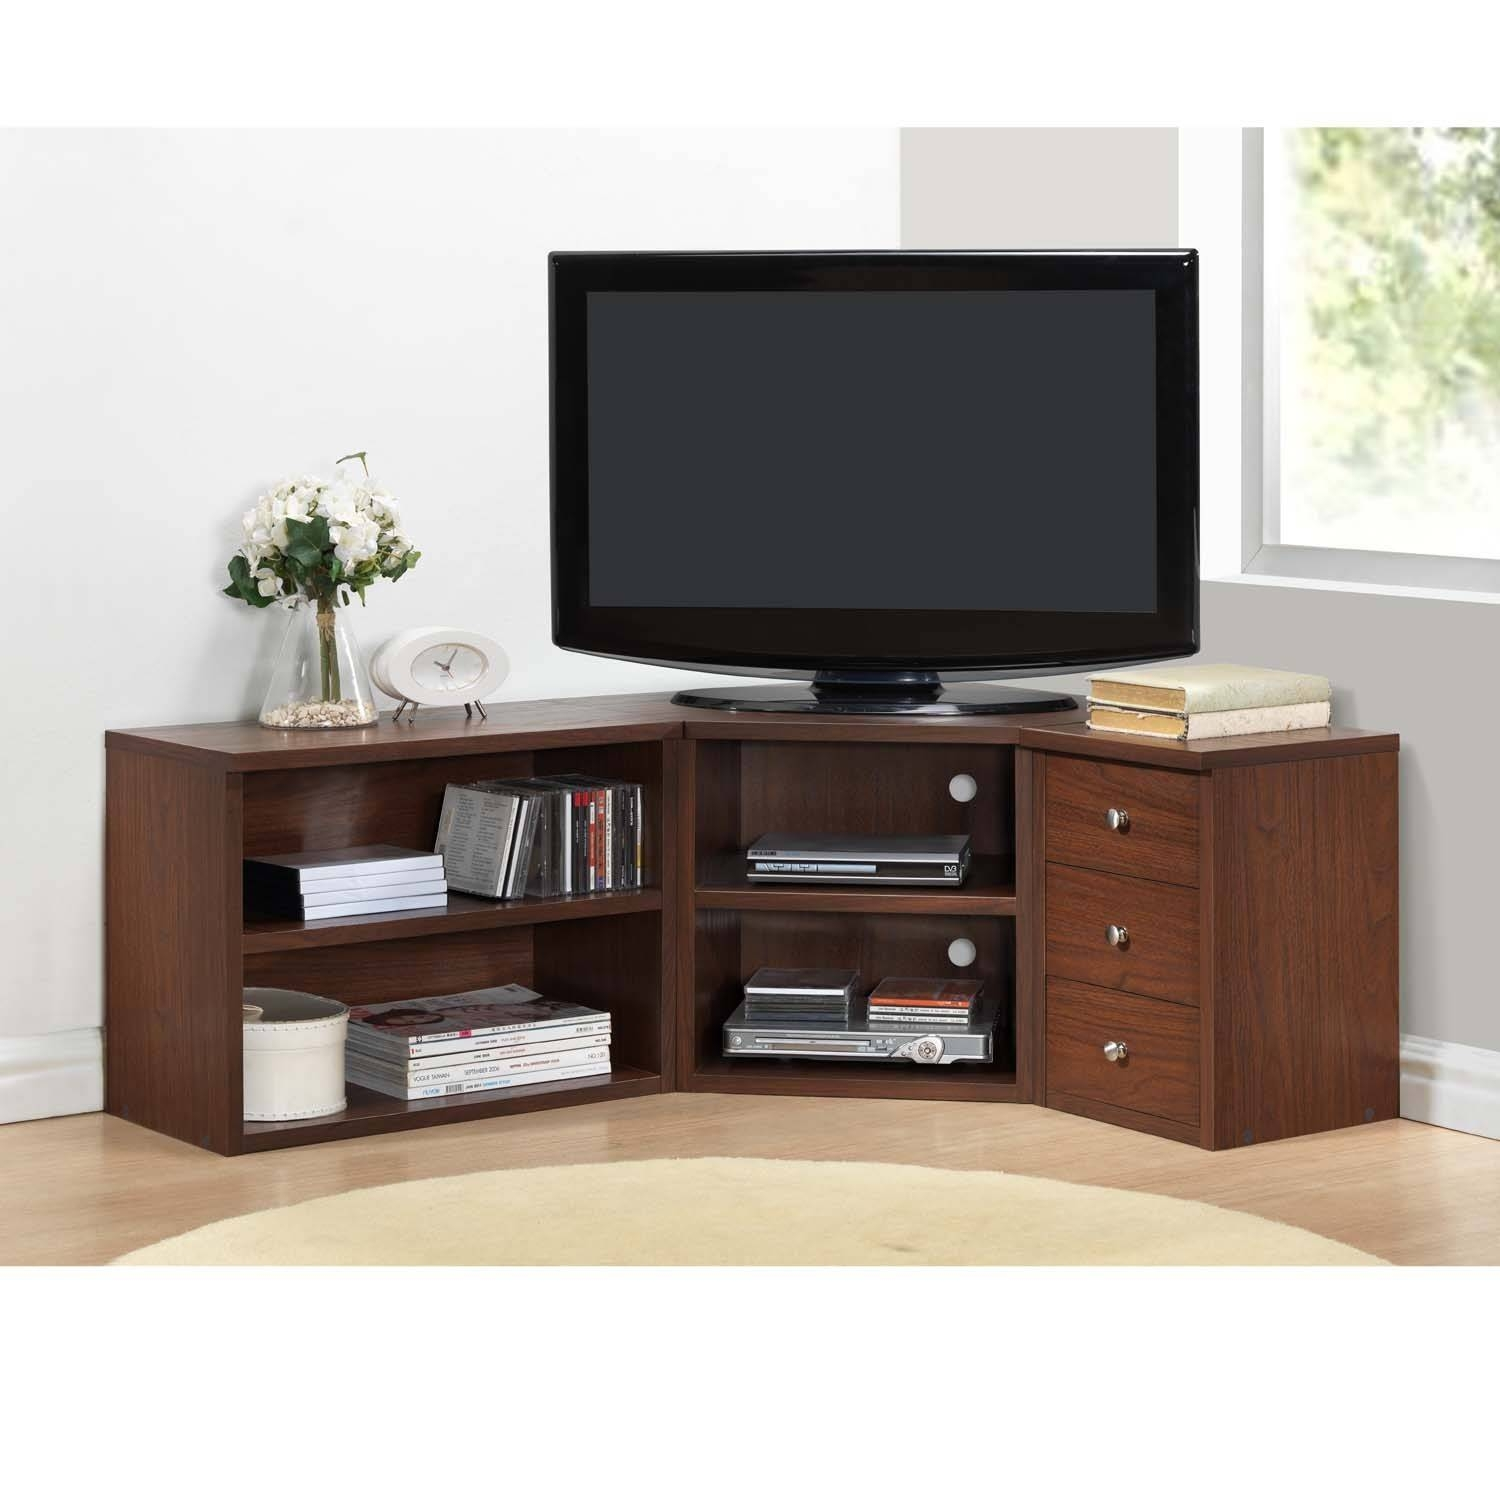 Lacquered Oak Wood Corner Tv Stand With Drawers Cabinet Of Stylish With Corner Tv Stands With Drawers (View 3 of 15)